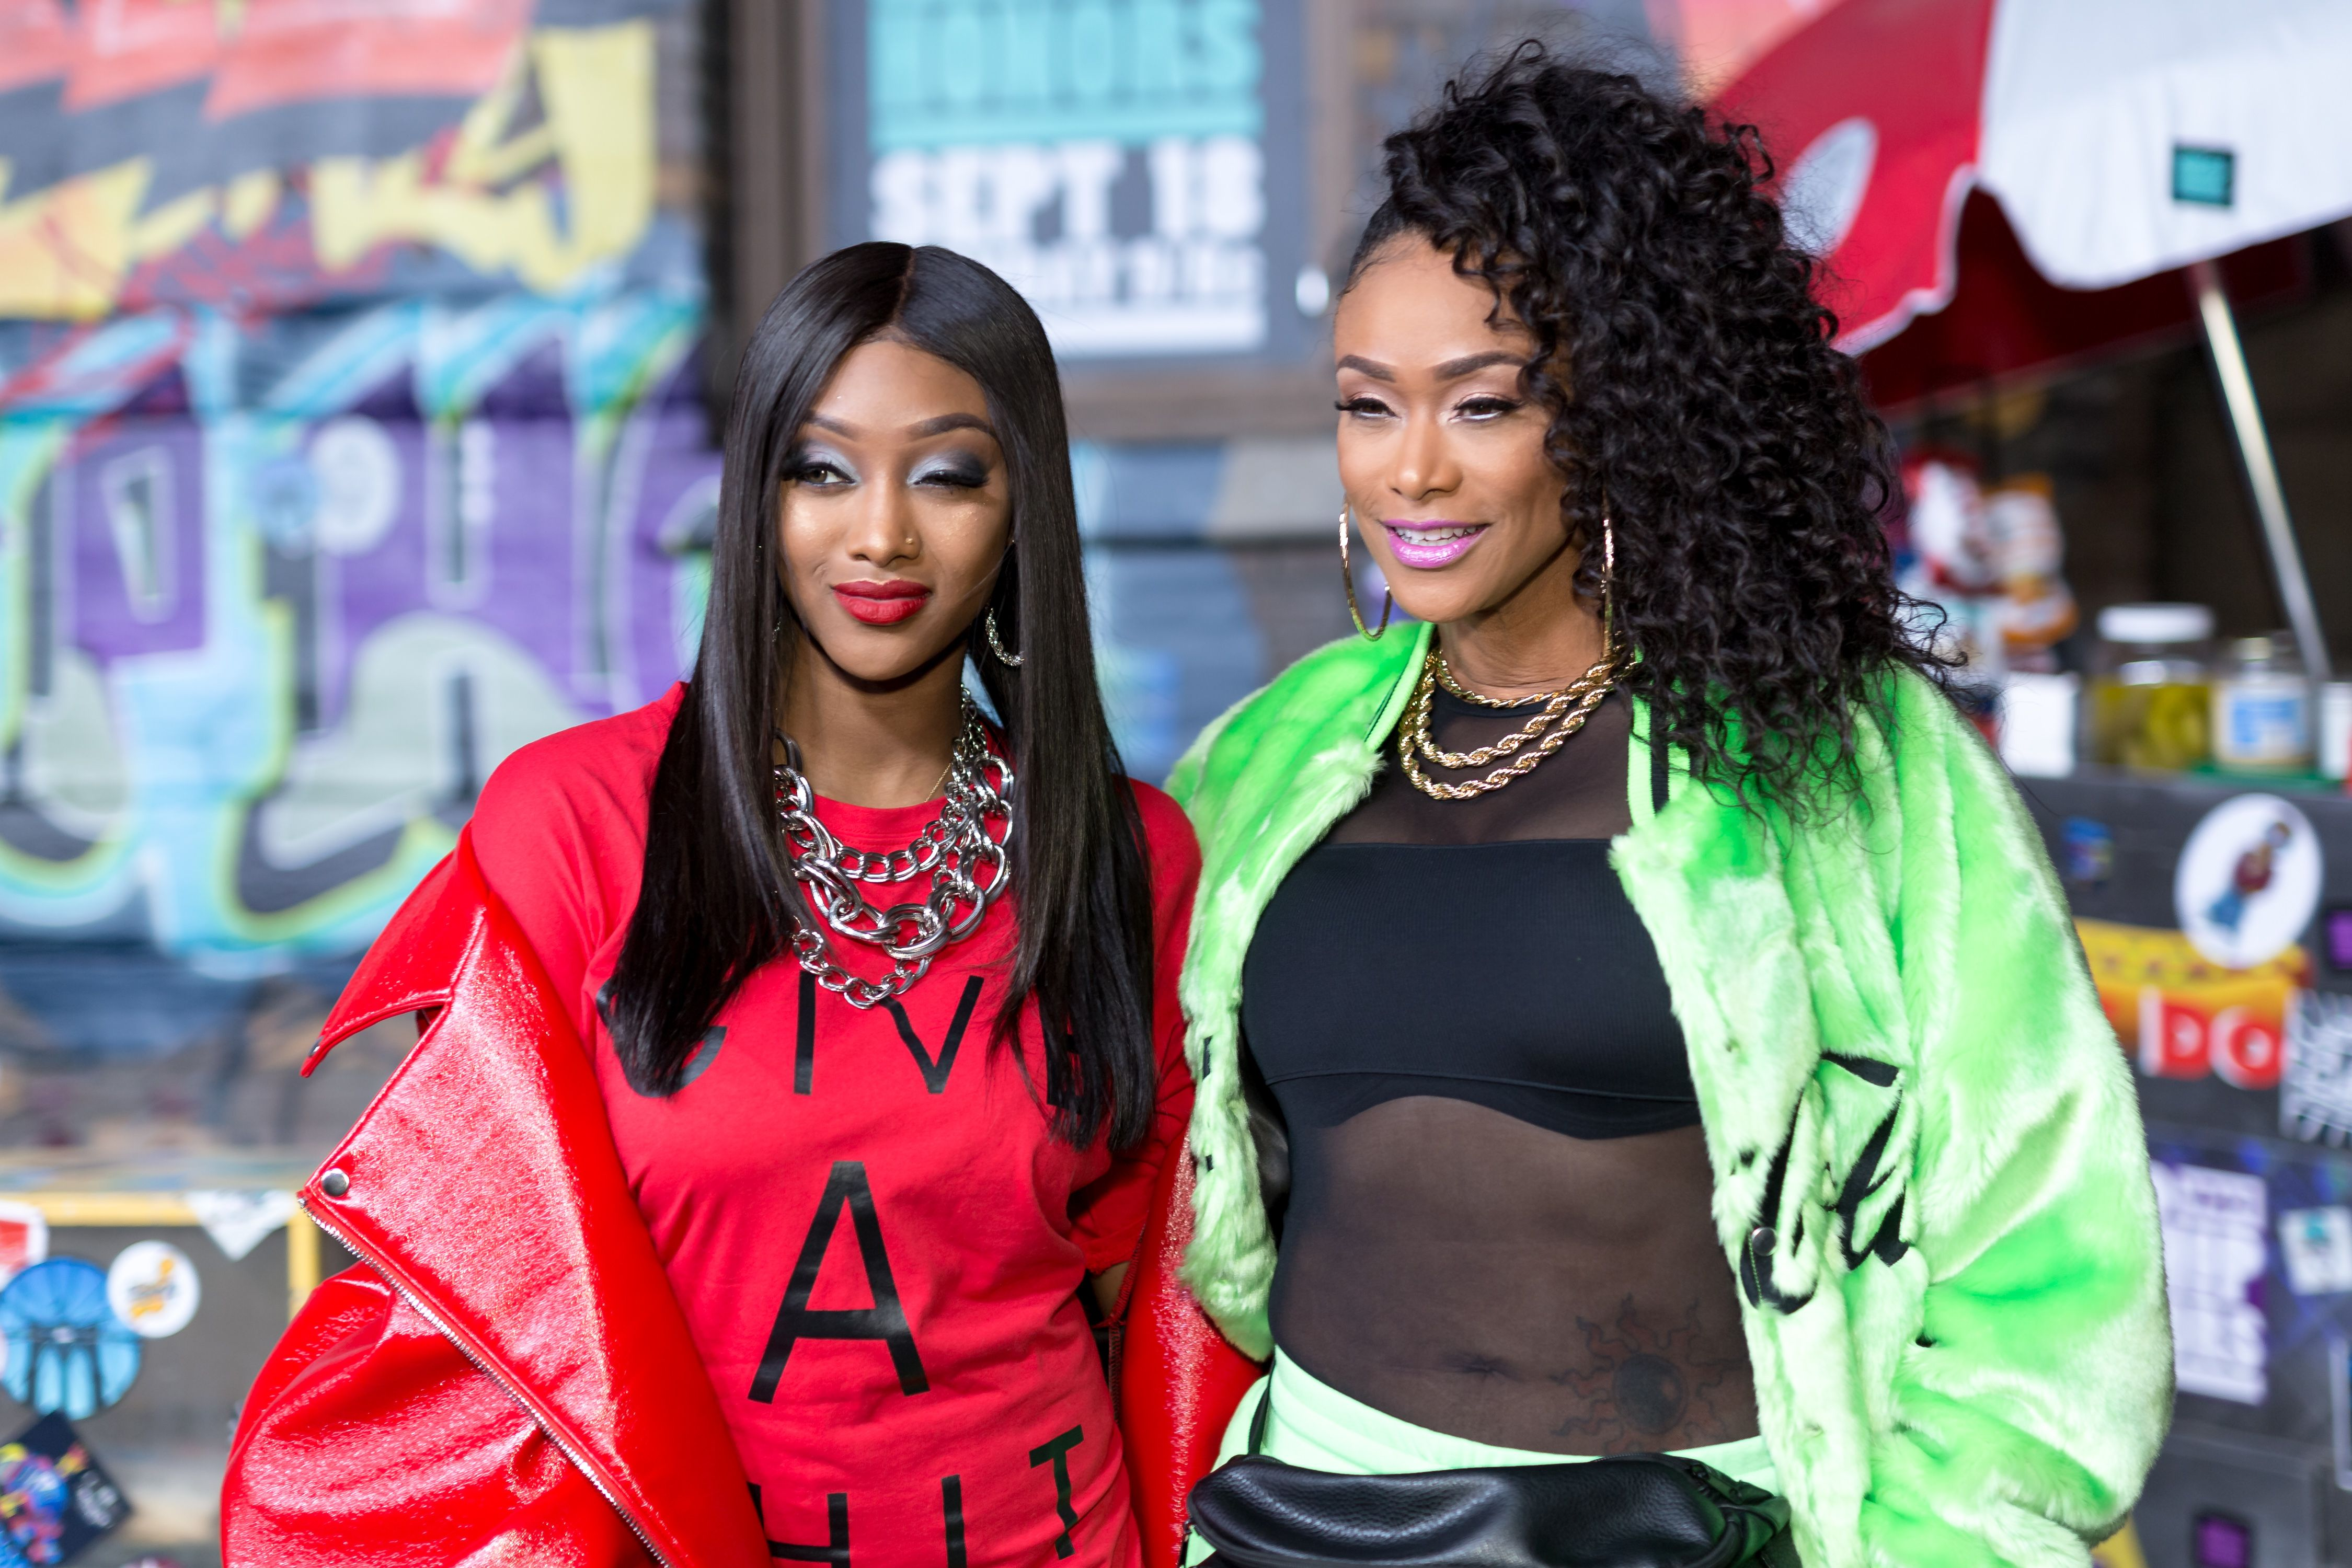 azz Anderson and Tami Roman at the VH1's Hip Hop Honors: The 90's Game Changers in 2017 in Hollywood | Source: Getty Images